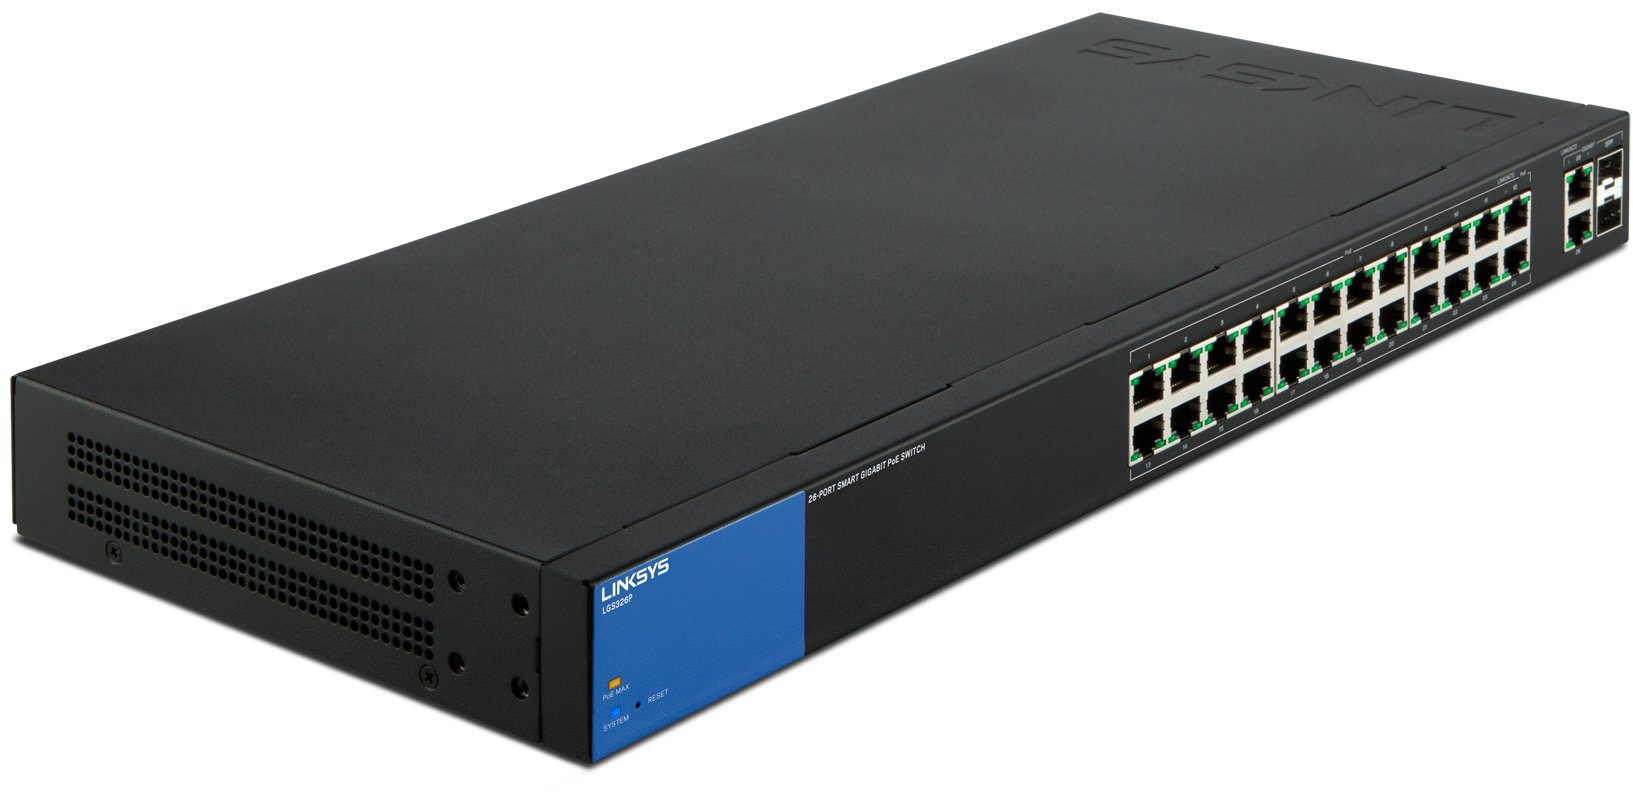 Linksys Business LGS326P 24-Port Gigabit PoE+ (192W) Smart Managed Switch with 2 Gigabit and 2 SFP Ports